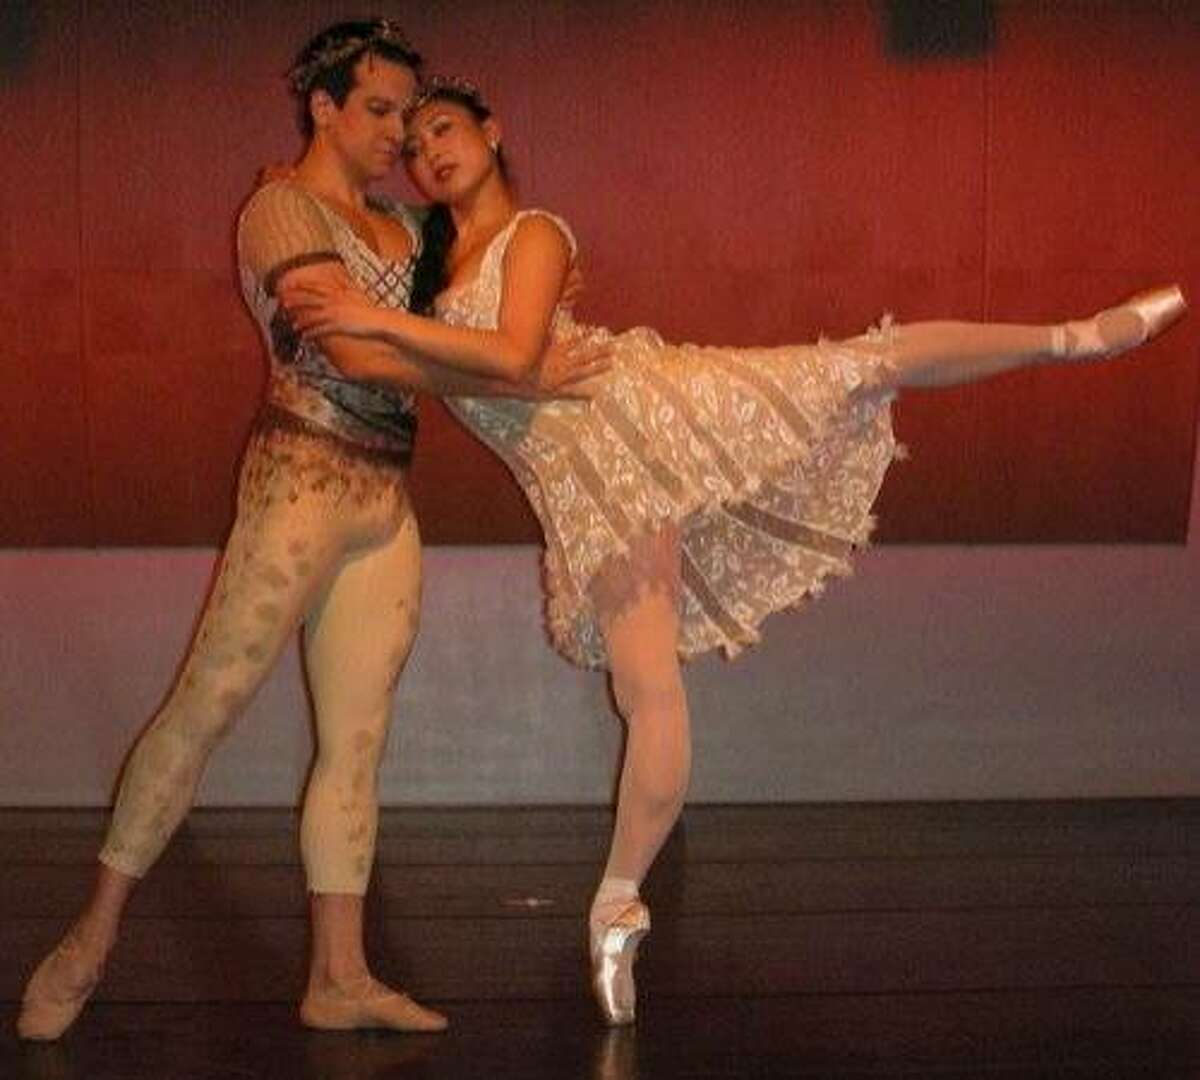 Attached photo: Jekyns Pelaez and Mayo Sugano in the pas de deux from A Midsummer Night's Dream, choreographed by Christopher Stowell. Photo: Erika Johnson